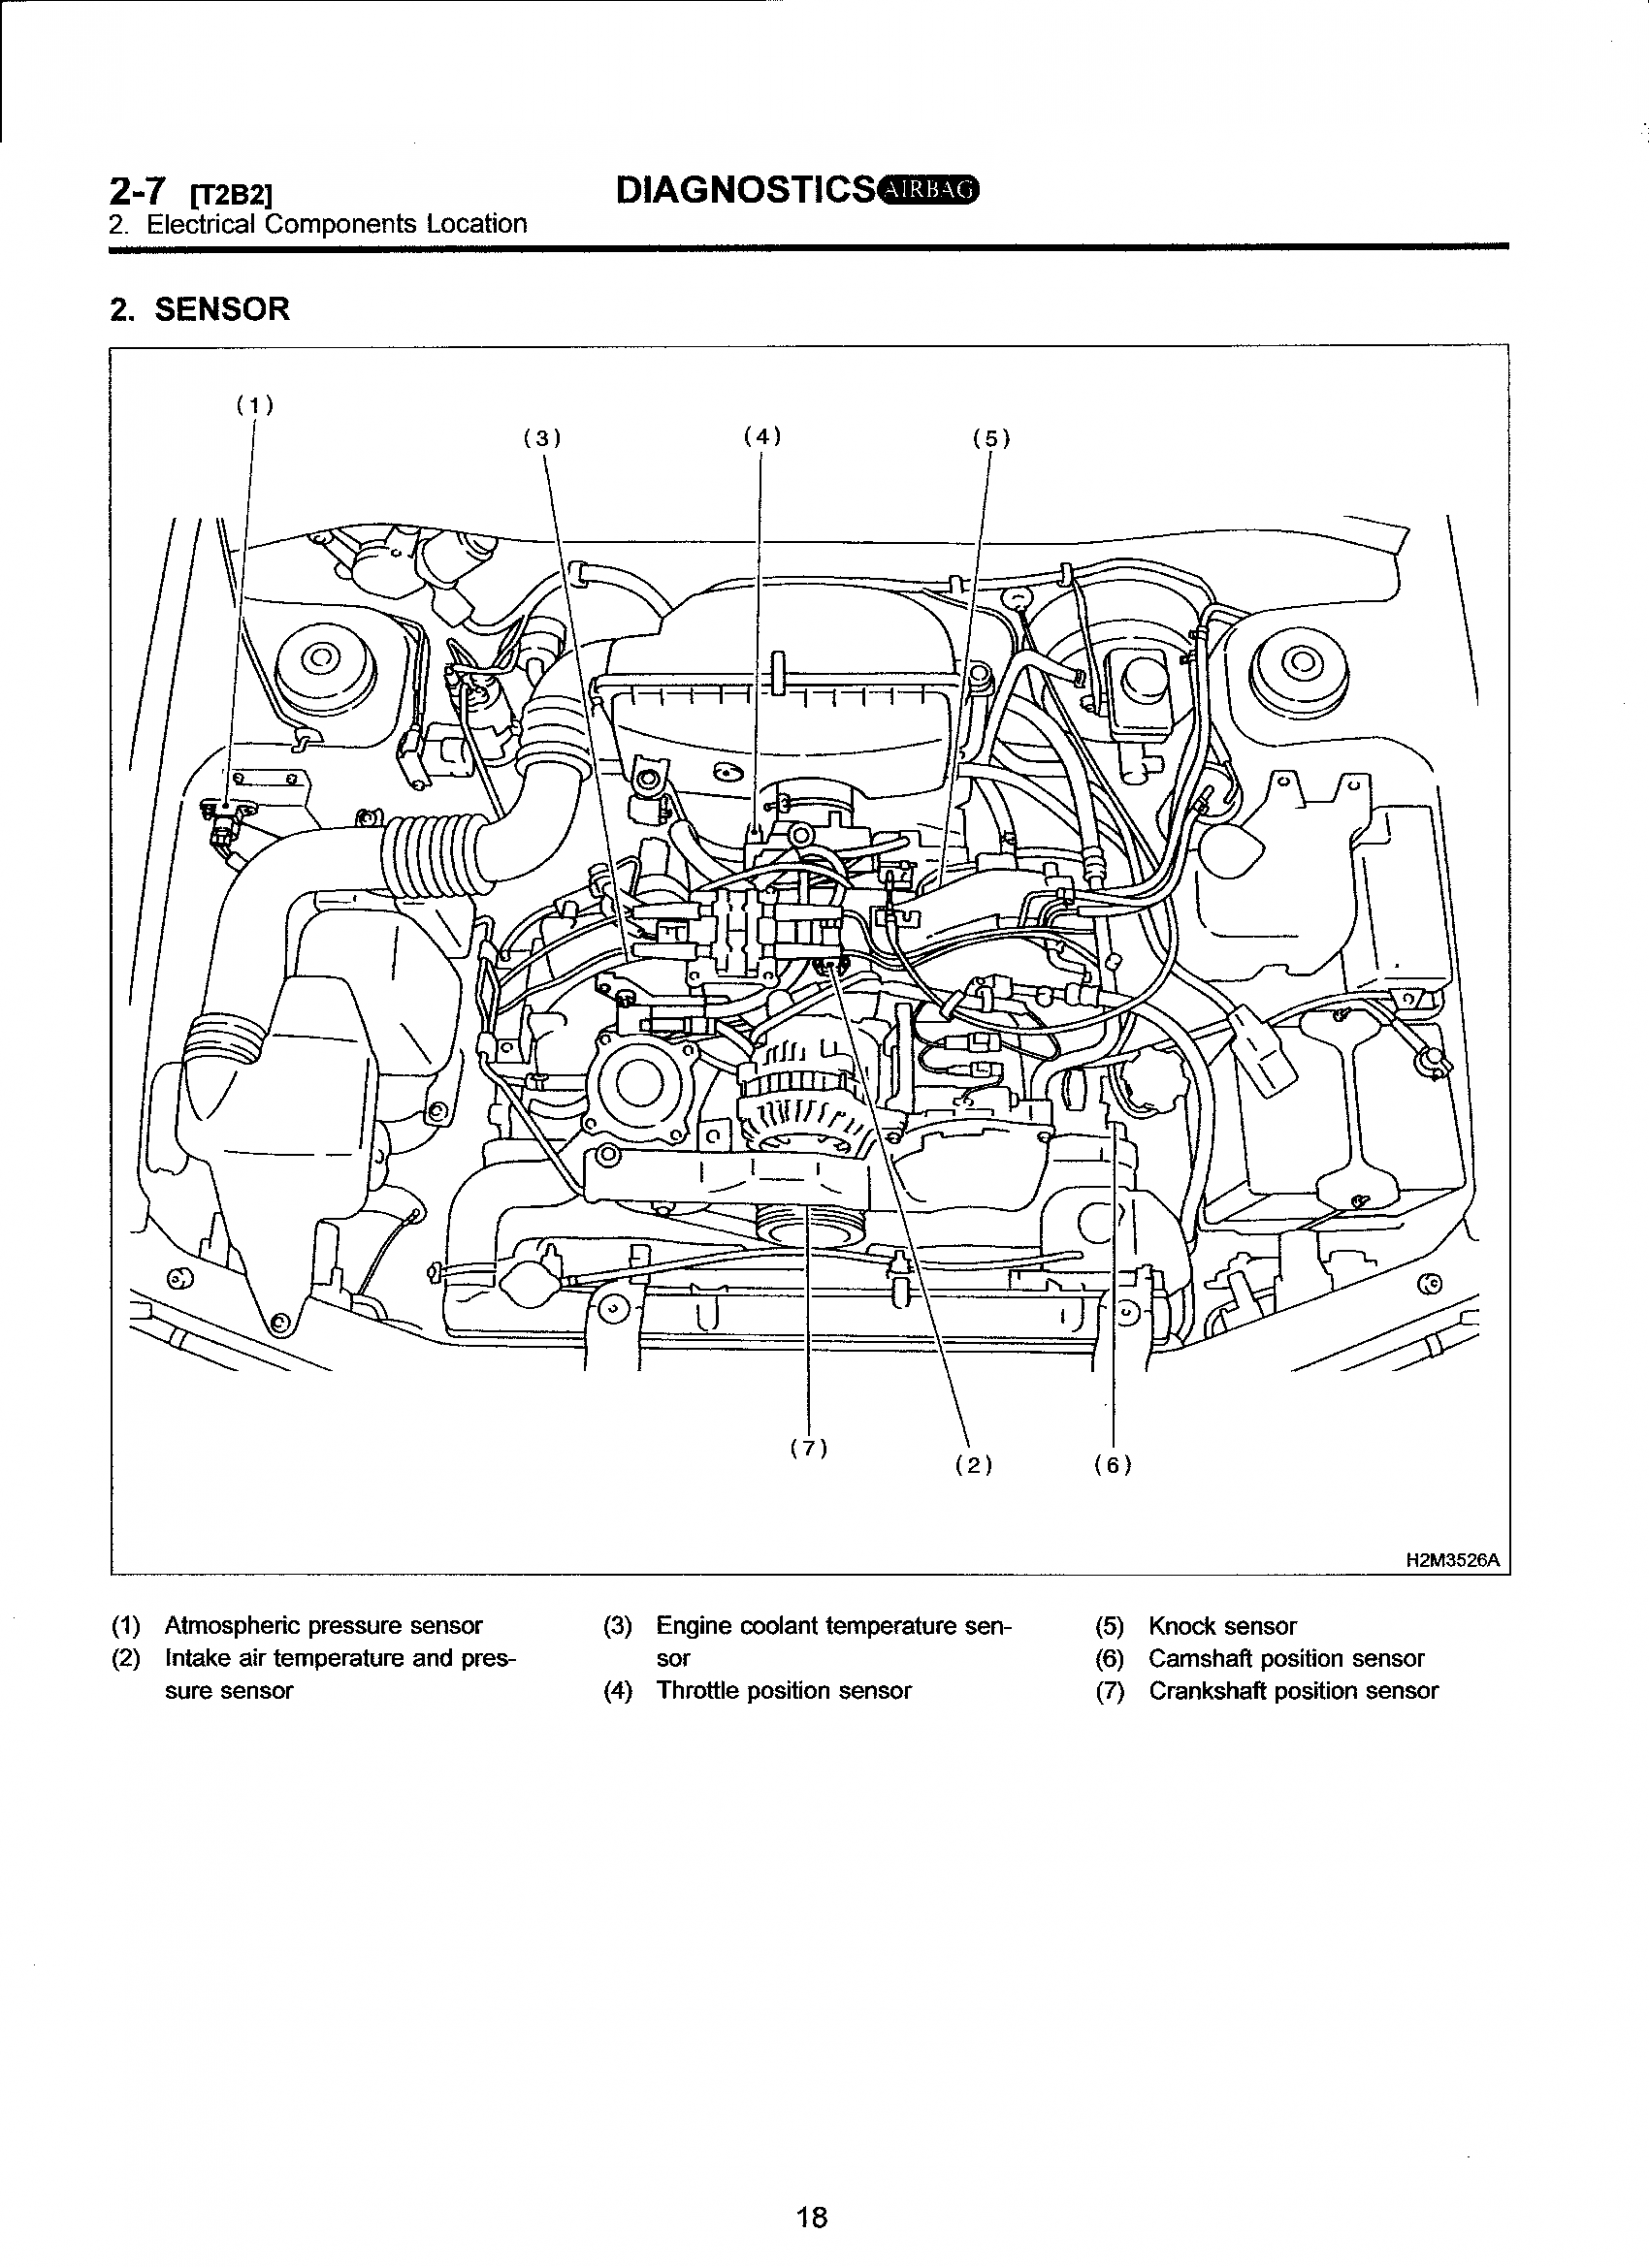 Subaru Forester Engine Diagram Subaru Forester Engine Diagramencouraged To Be Able To Our Blog With This Time Period S In 2020 Subaru Forester Subaru Subaru Impreza